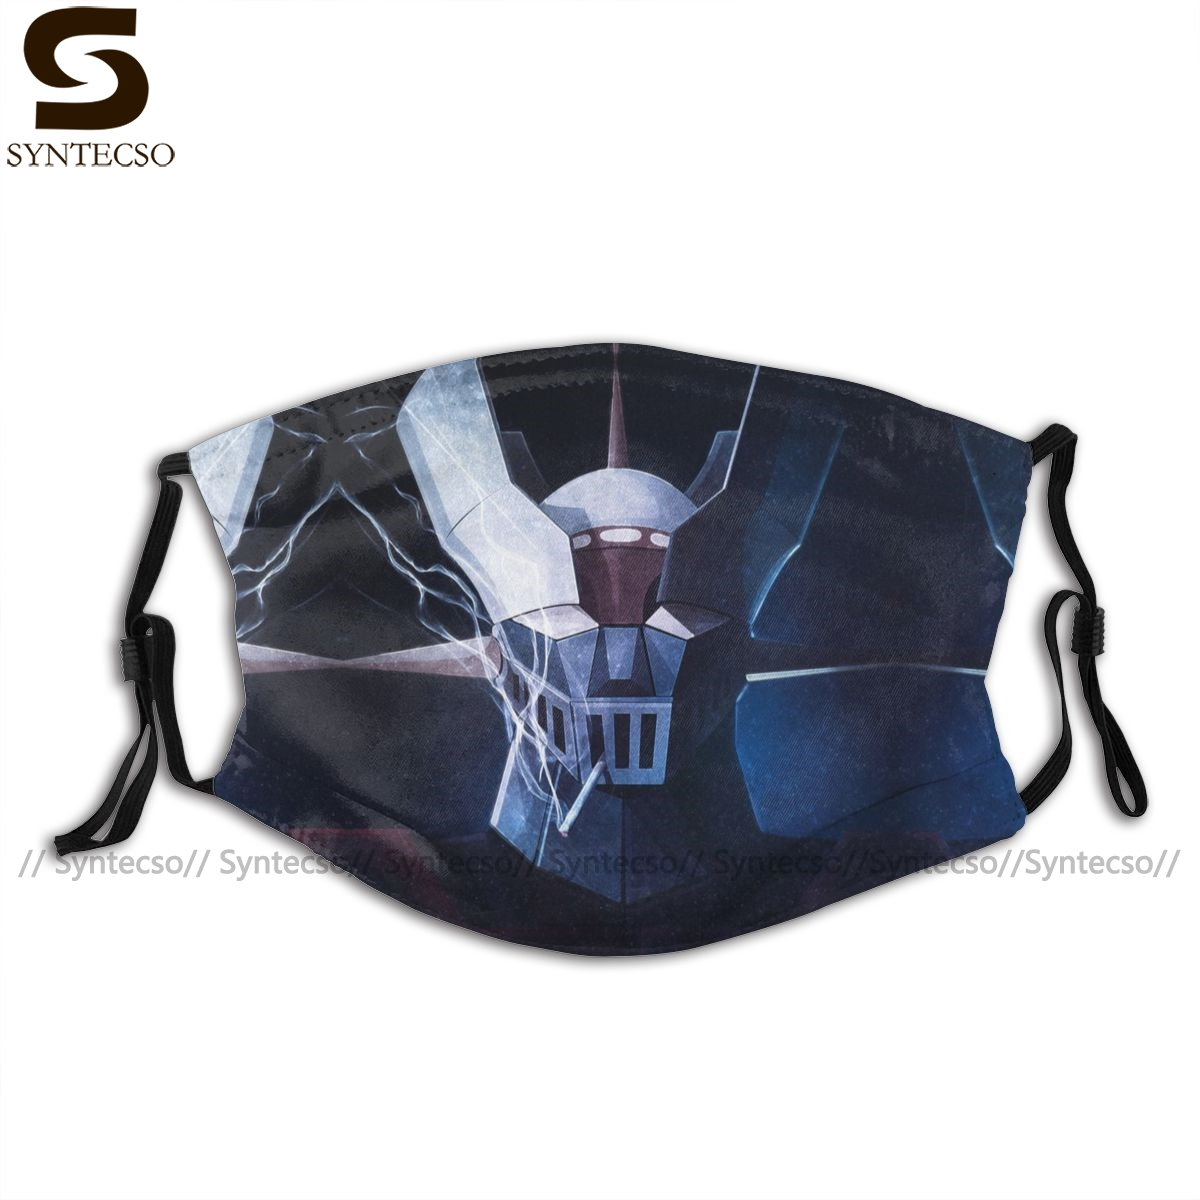 Mazinger Mouth Face Mask Mazinger Smoke Facial Mask Funny Fashion With 2 Filters For Adult